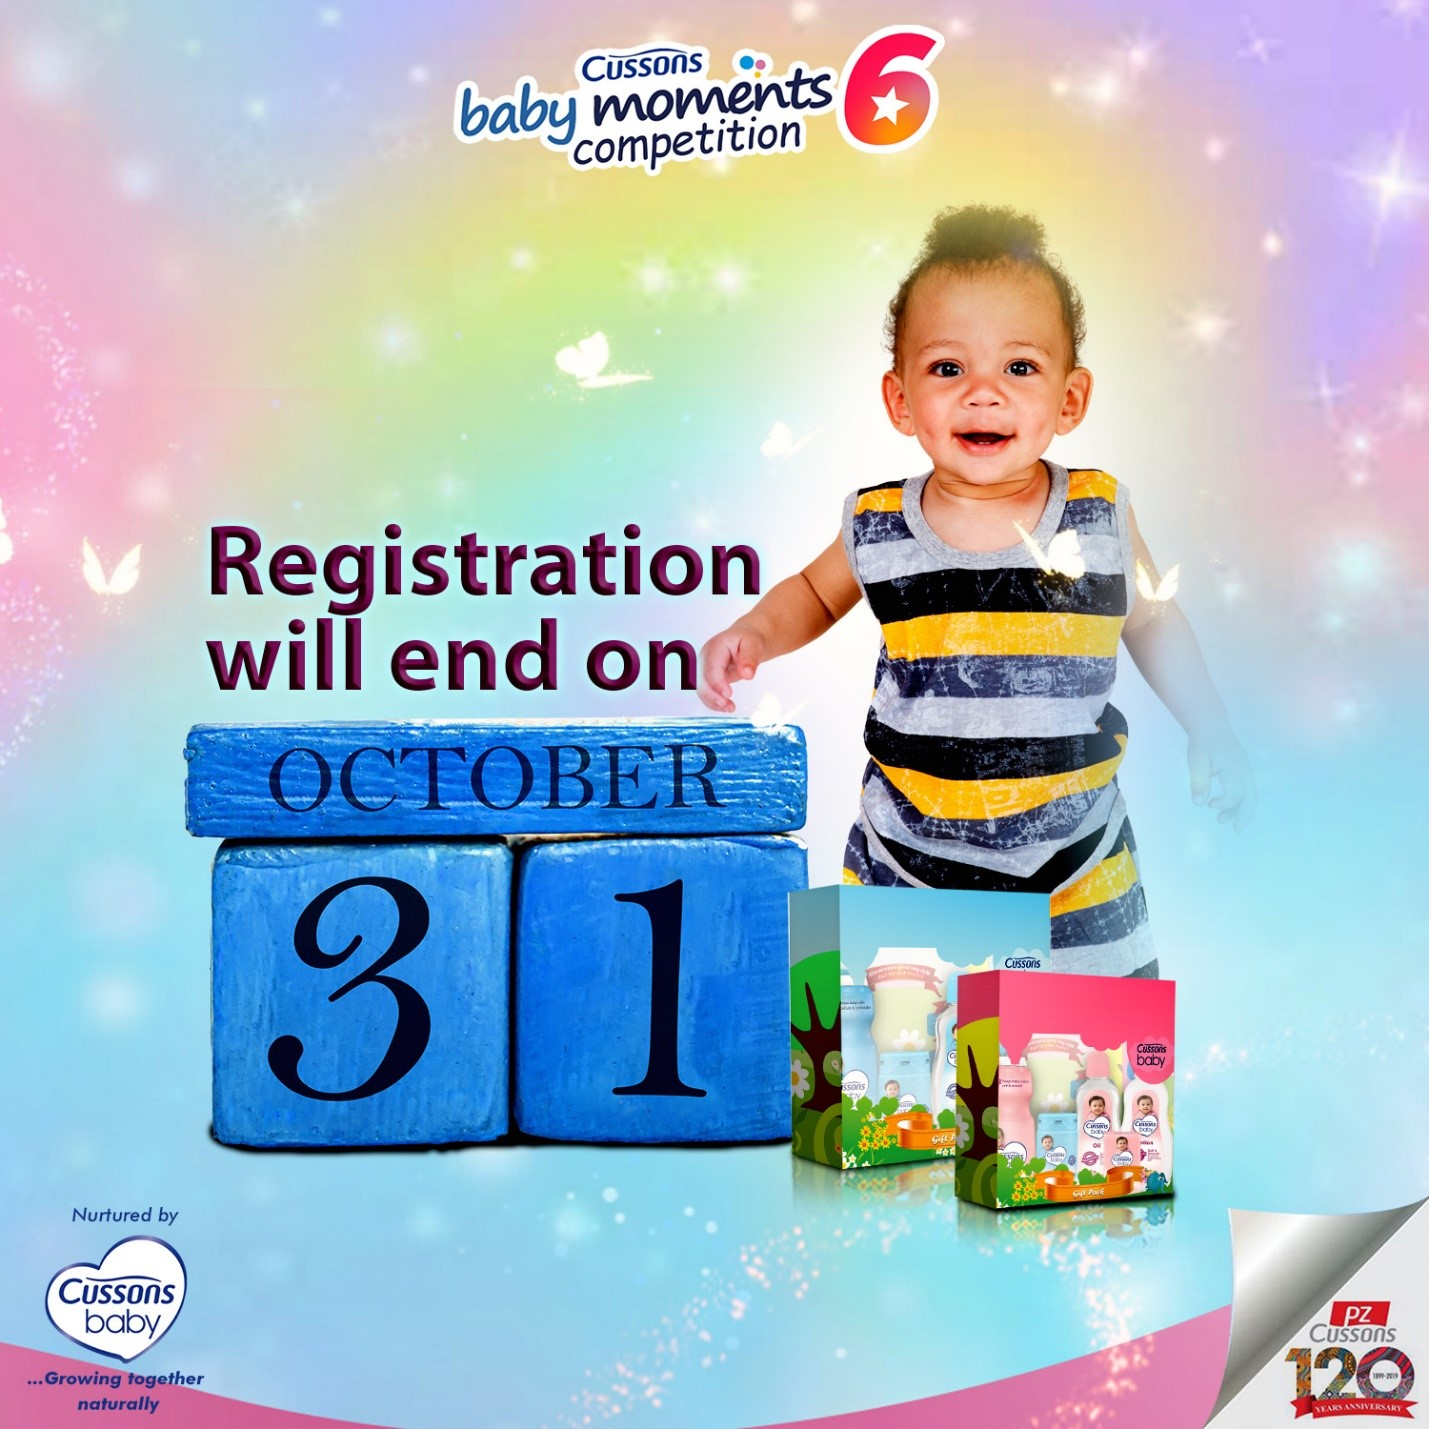 Just 1 Day left for You to Register your Child in the Cussons Baby Moments 6 Competition